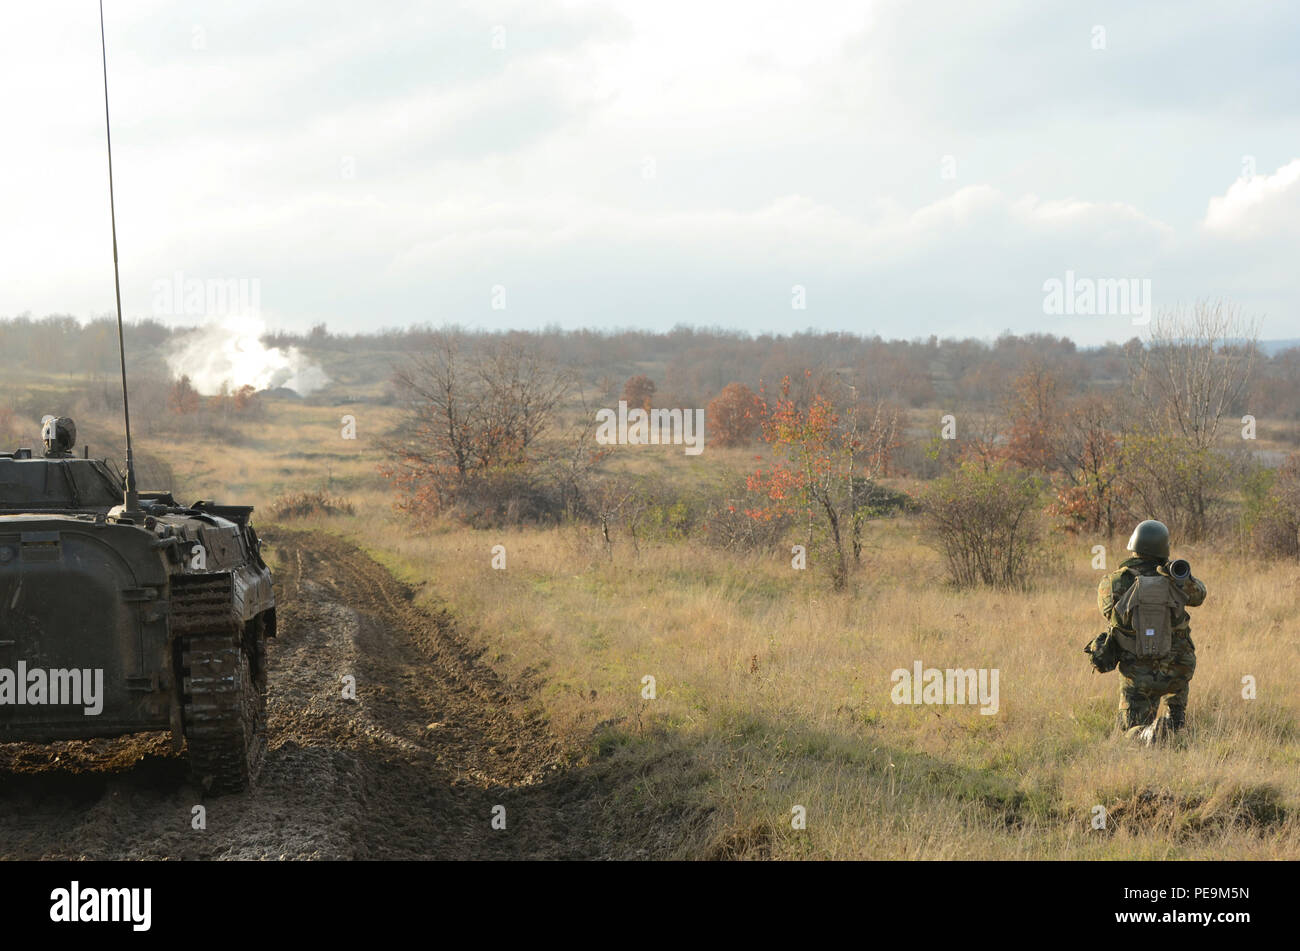 A Bulgarian soldier of 1-61st Mechanized Battalion kneels and pretends to fire a Rocket Propelled Grenade launcher as the smoke in the distance simulates an explosion during Exercise Peace Sentinel at Novo Selo Training Center, Bulgaria, Nov. 24, 2015. (U.S. Army photo by Staff Sgt. Steven M. Colvin/Released) - Stock Image